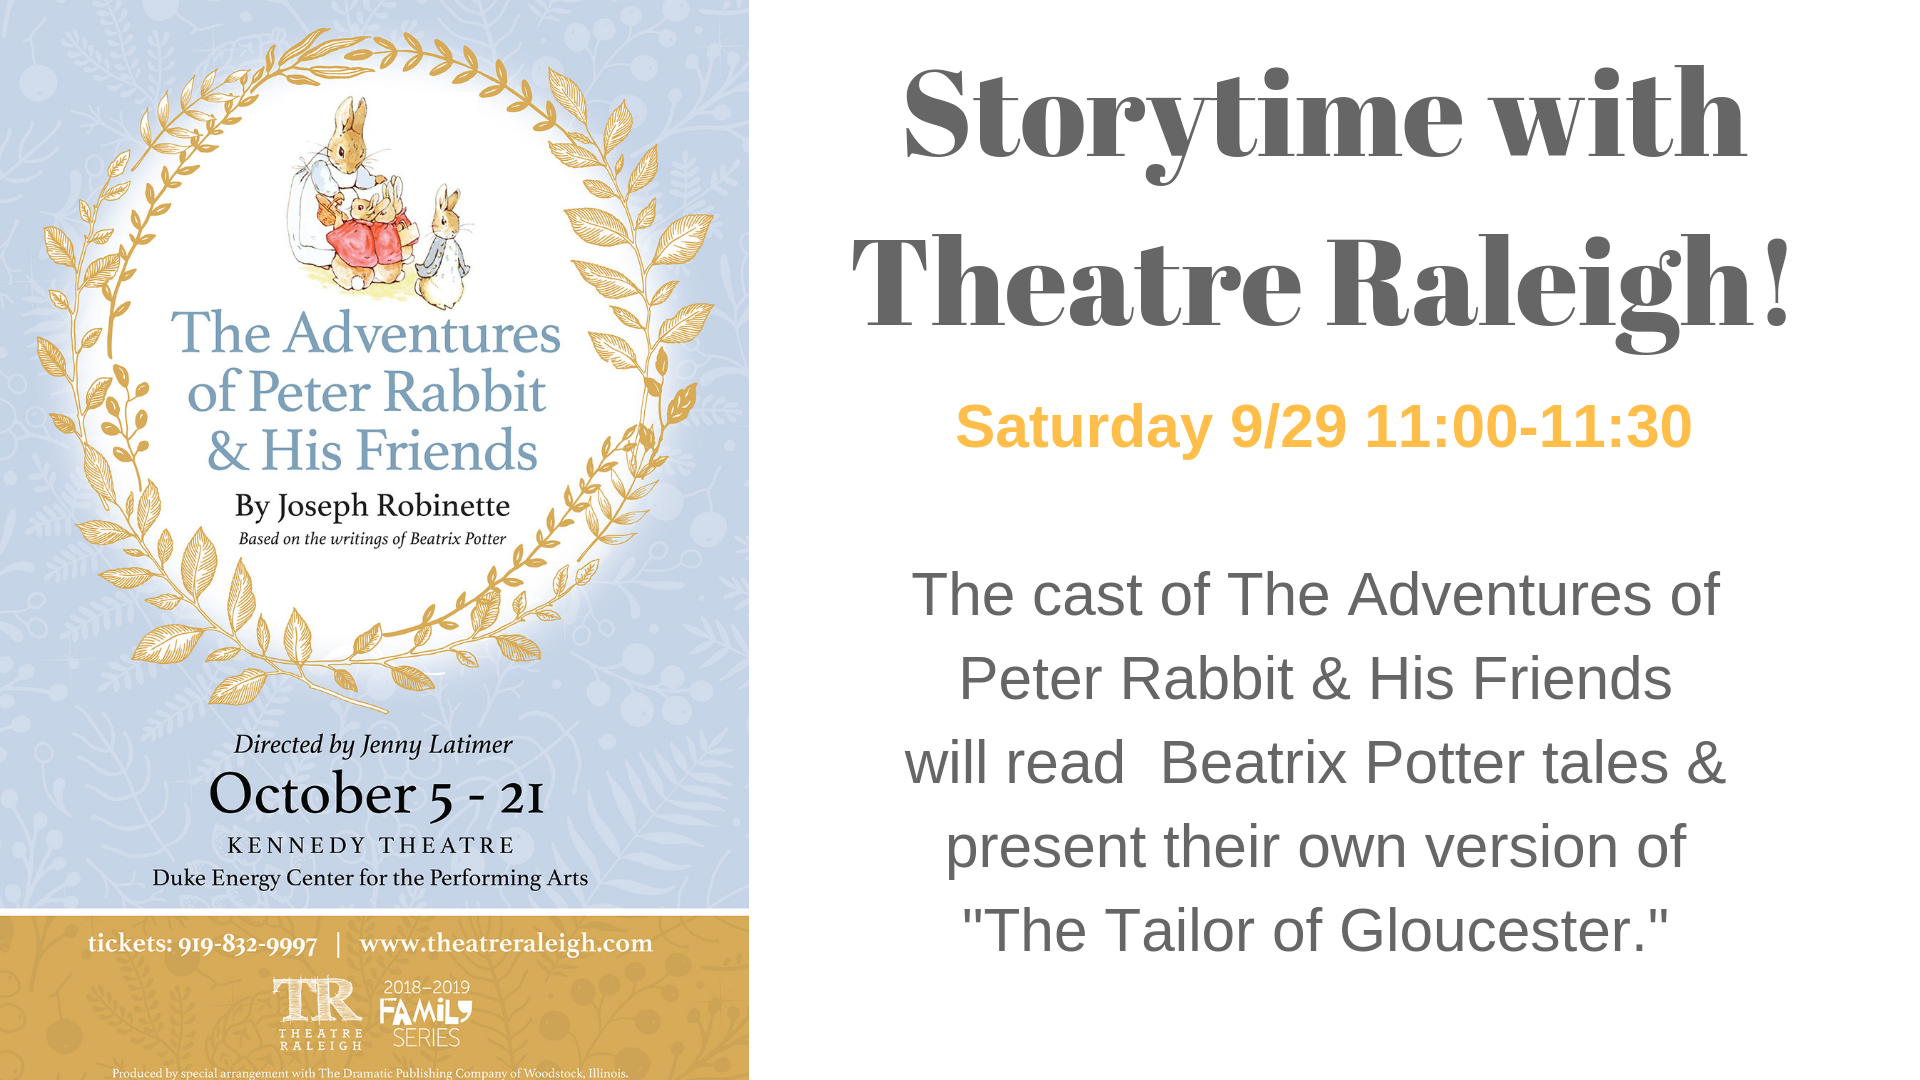 Storytime with Theatre Raleigh!.png